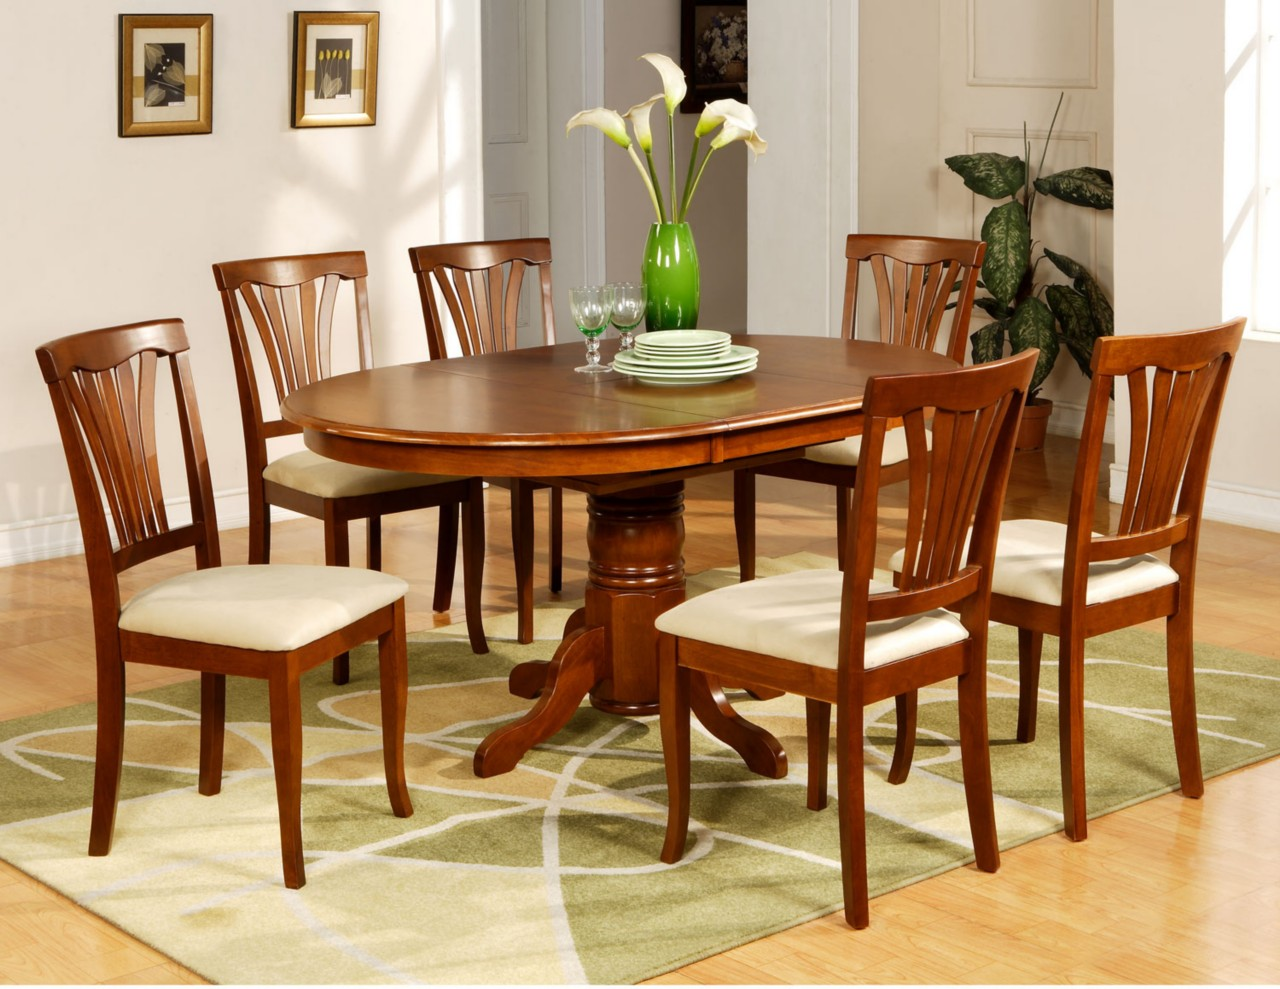 7 PC AVON OVAL DINETTE KITCHEN DINING ROOM TABLE WITH 6  : 481368468o from www.ebay.com size 1280 x 989 jpeg 252kB